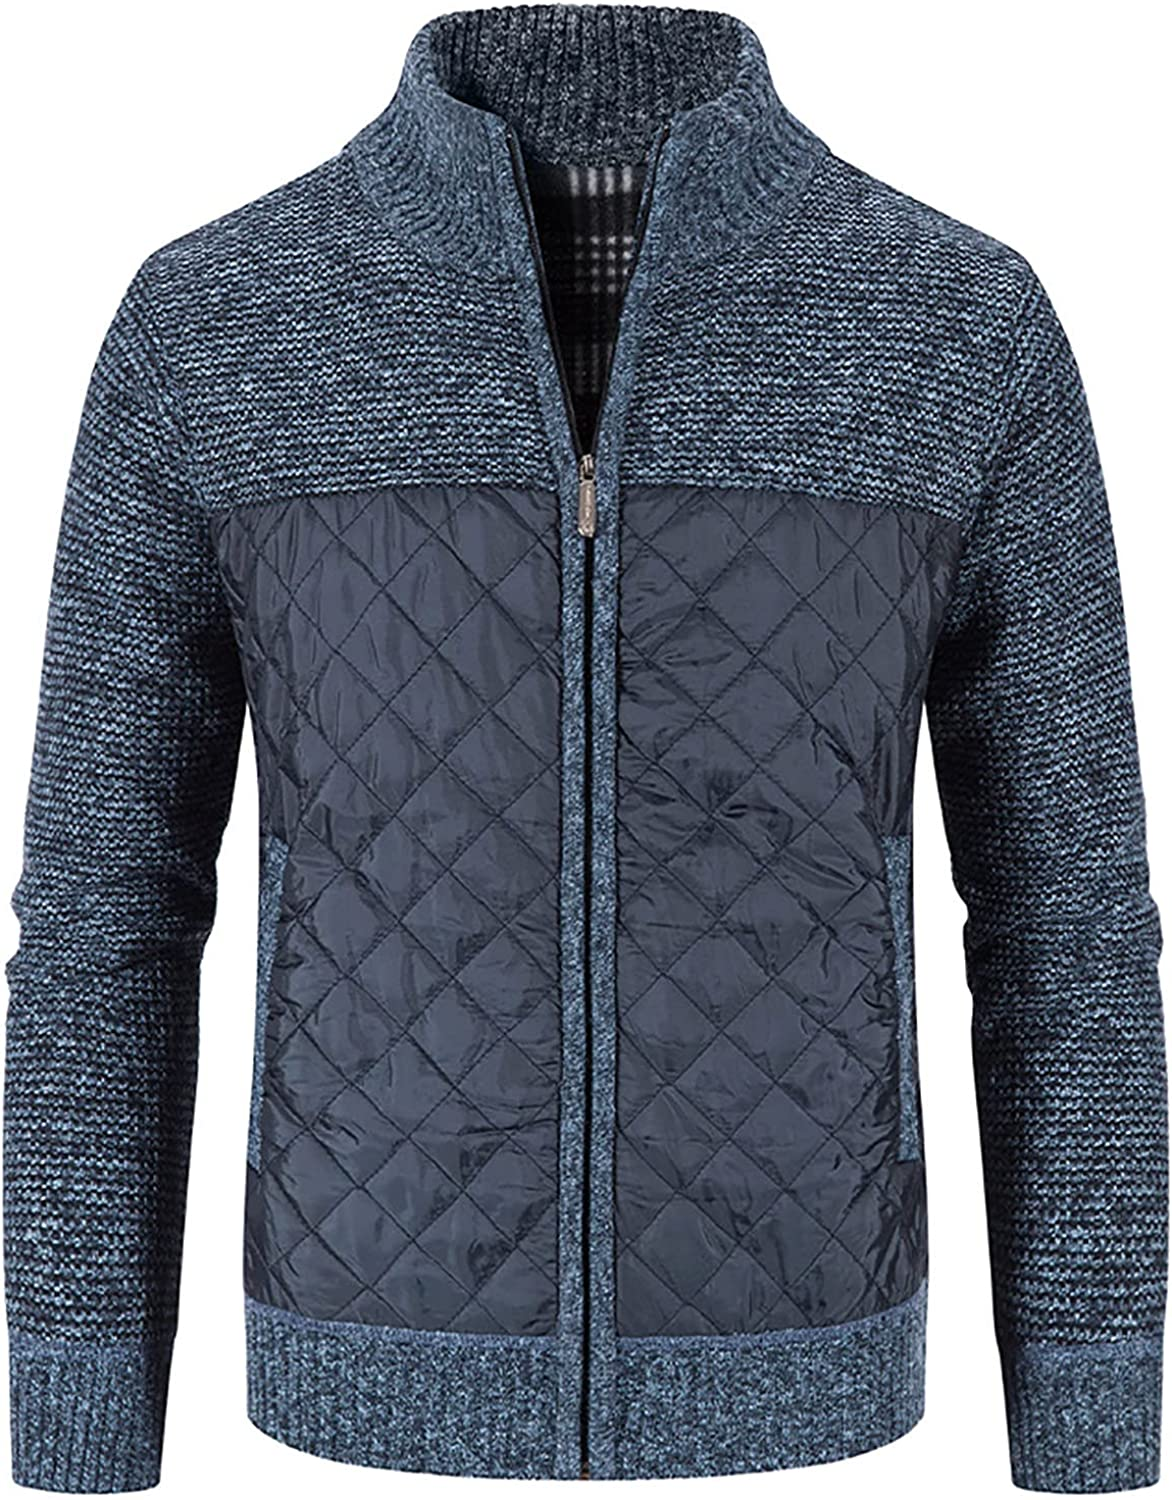 Bravetoshop Men's Casual Cardigan Sweaters Full Zip Stand Collar Slim Fit Knitted Sweater Outerwear with Pockets